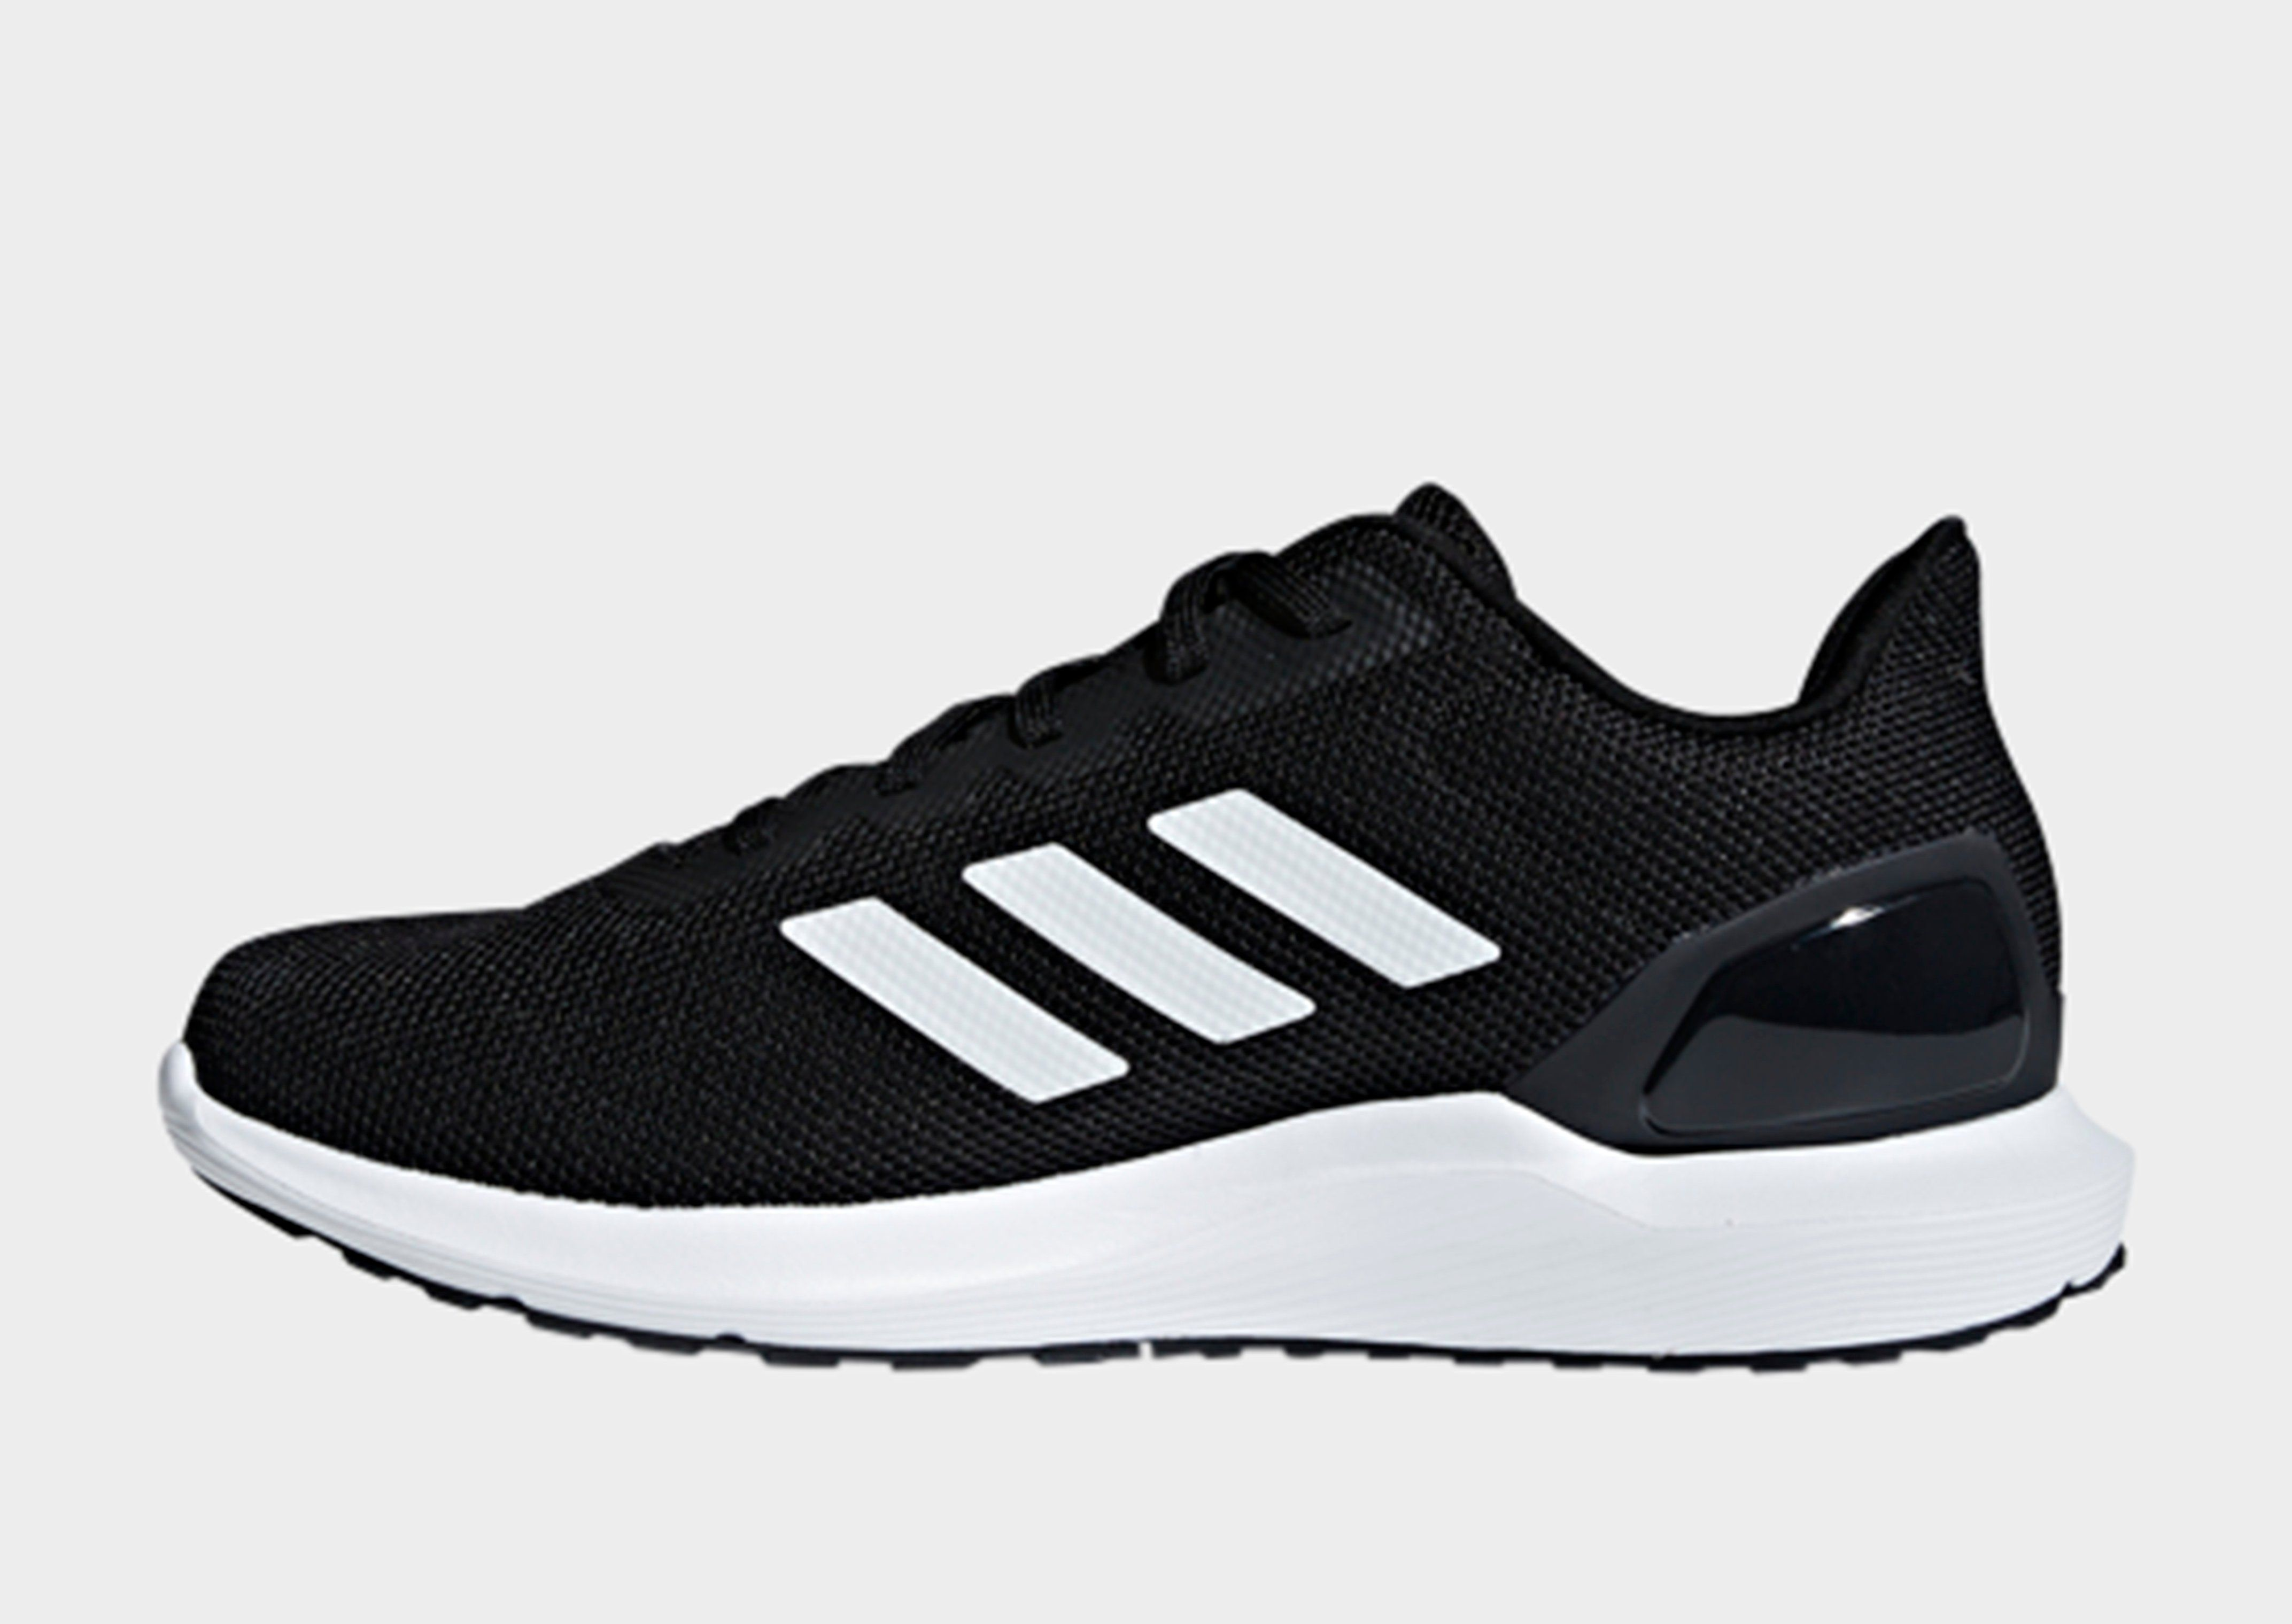 new style 1fa71 e8642 ADIDAS Cosmic 2 Shoes   JD Sports